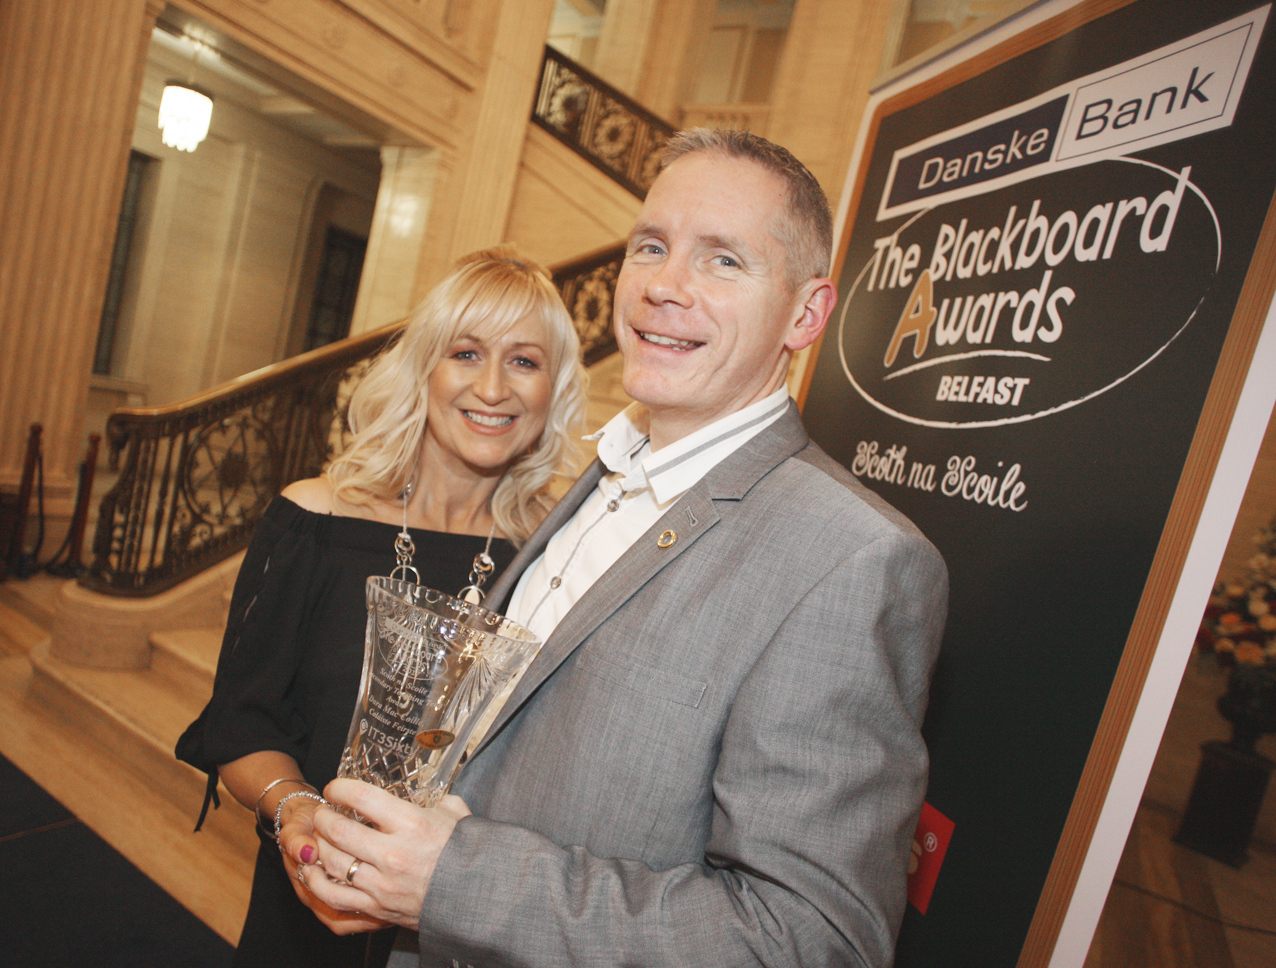 Blackboard awards Belfast 2017 at Stormount, Dara and Bridi MaCcoille